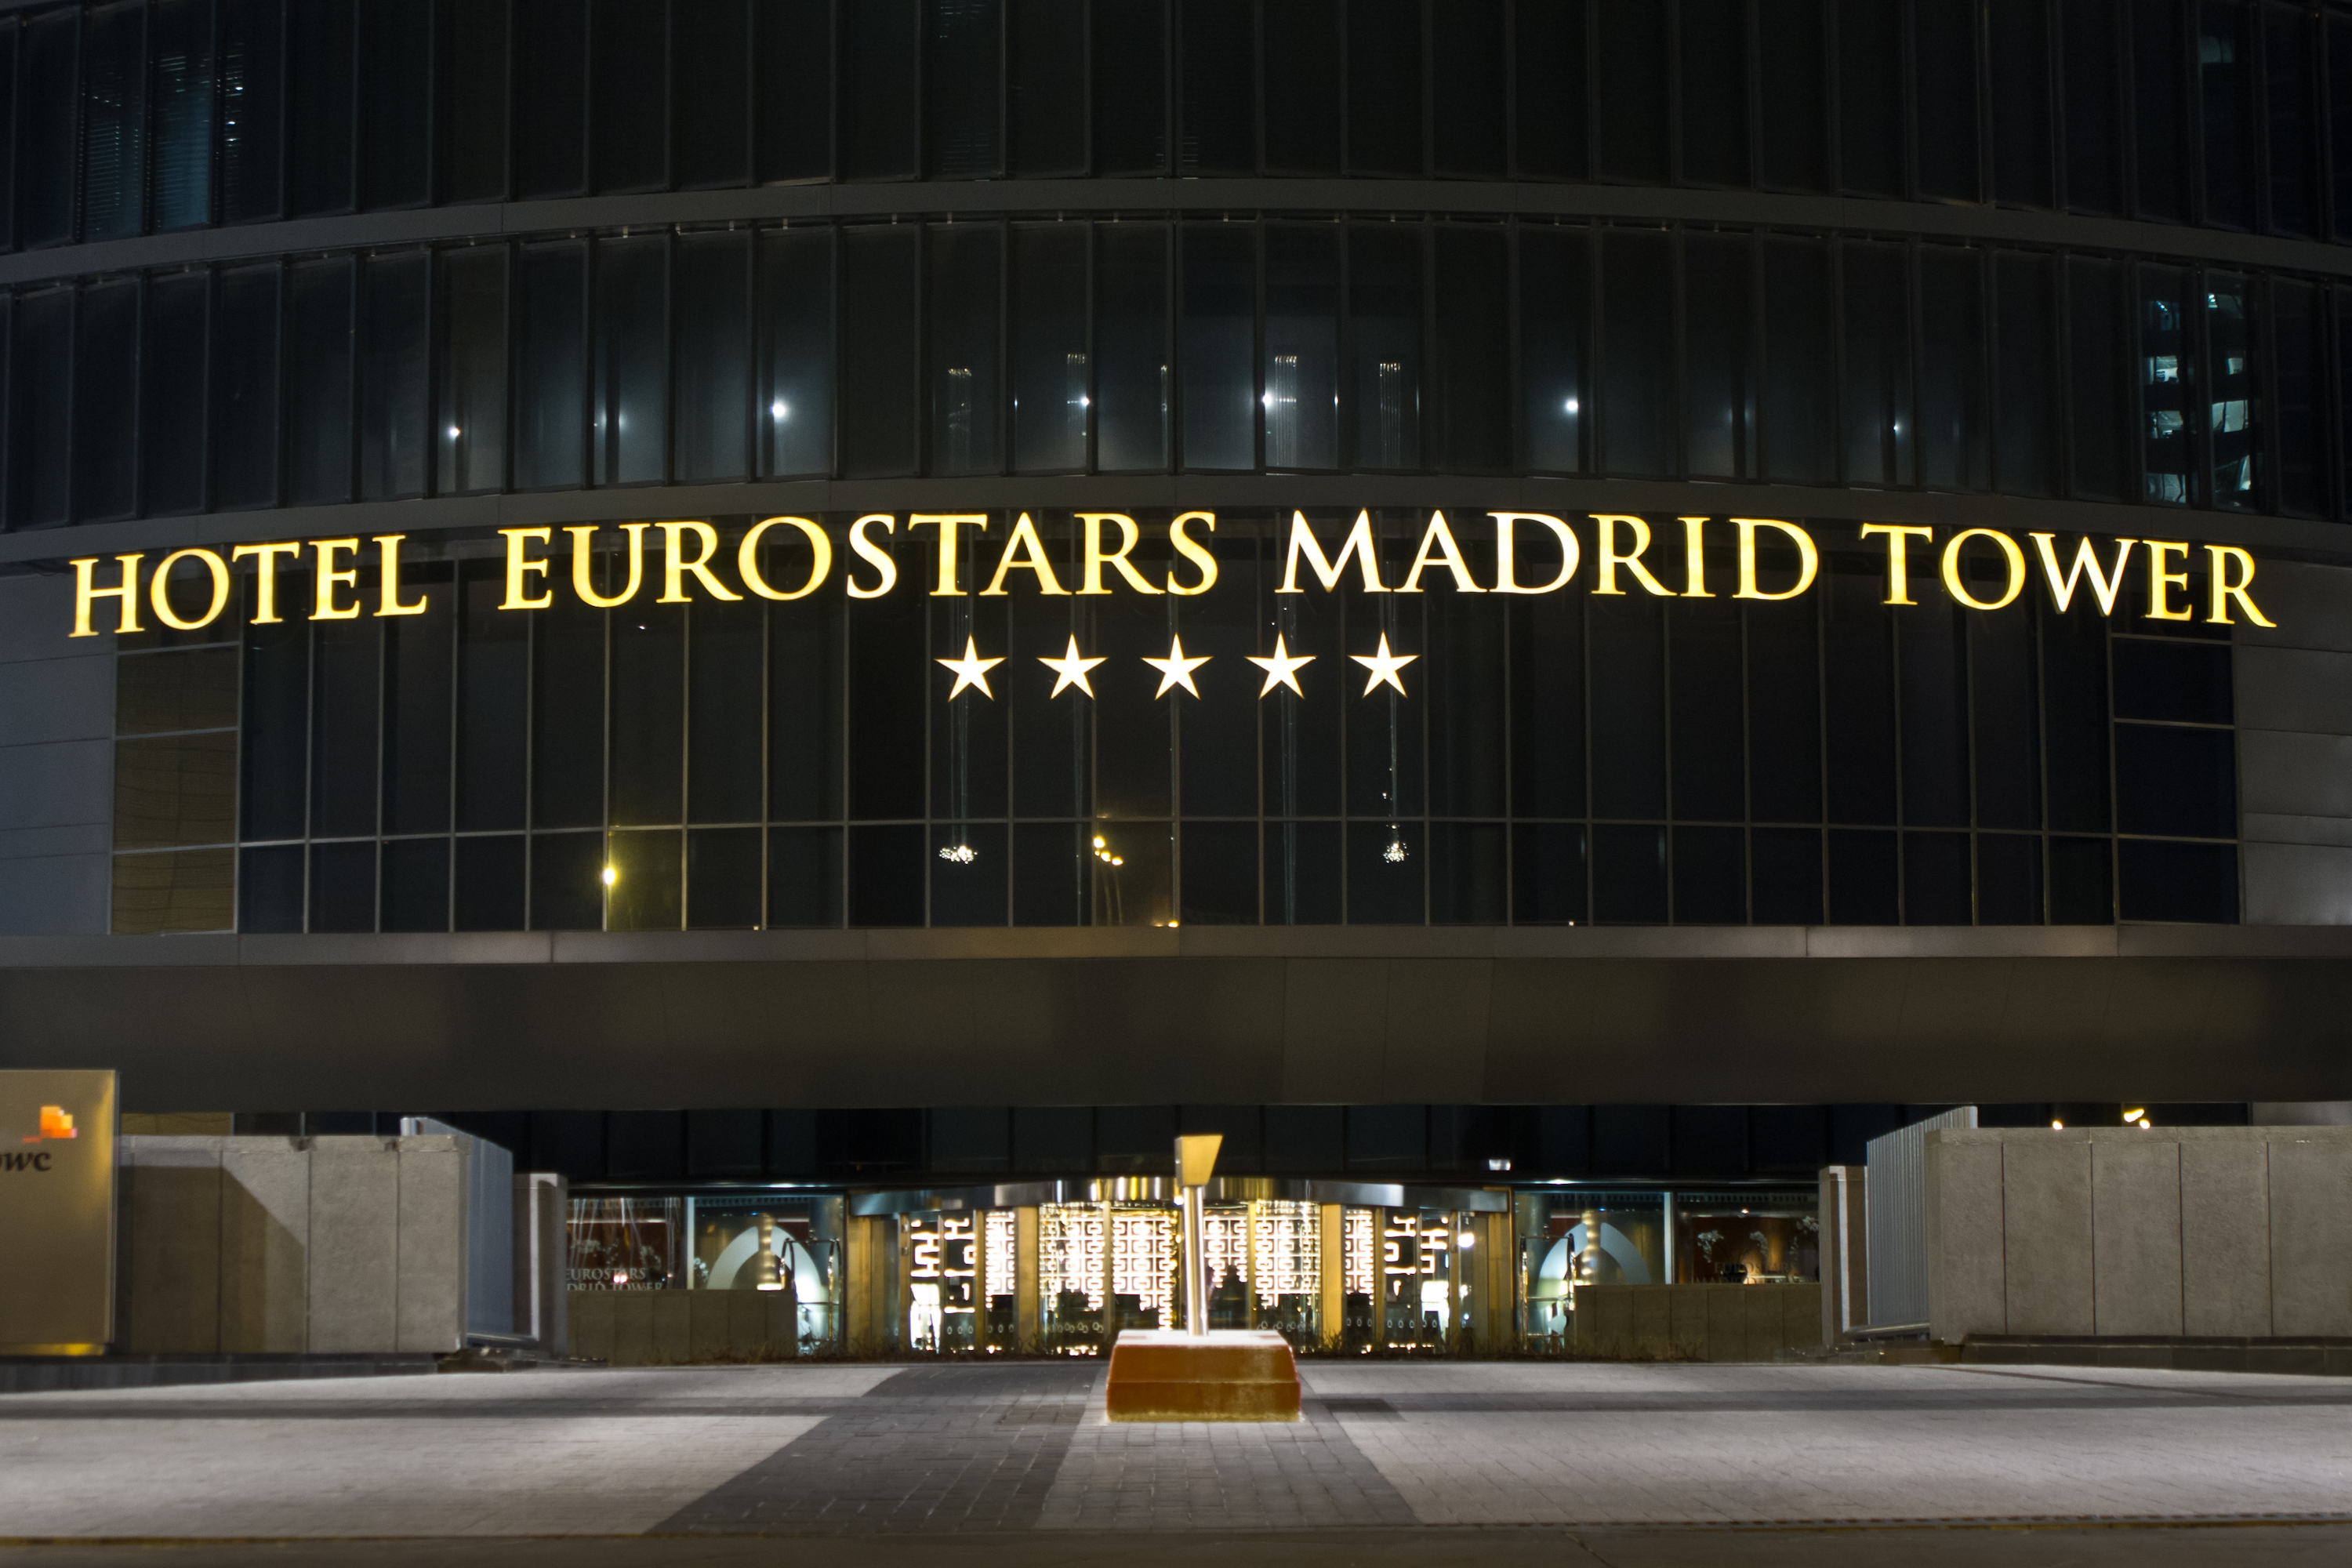 Description Hotel Eurostars Madrid Tower.jpg: commons.wikimedia.org/wiki/File:Hotel_Eurostars_Madrid_Tower.jpg